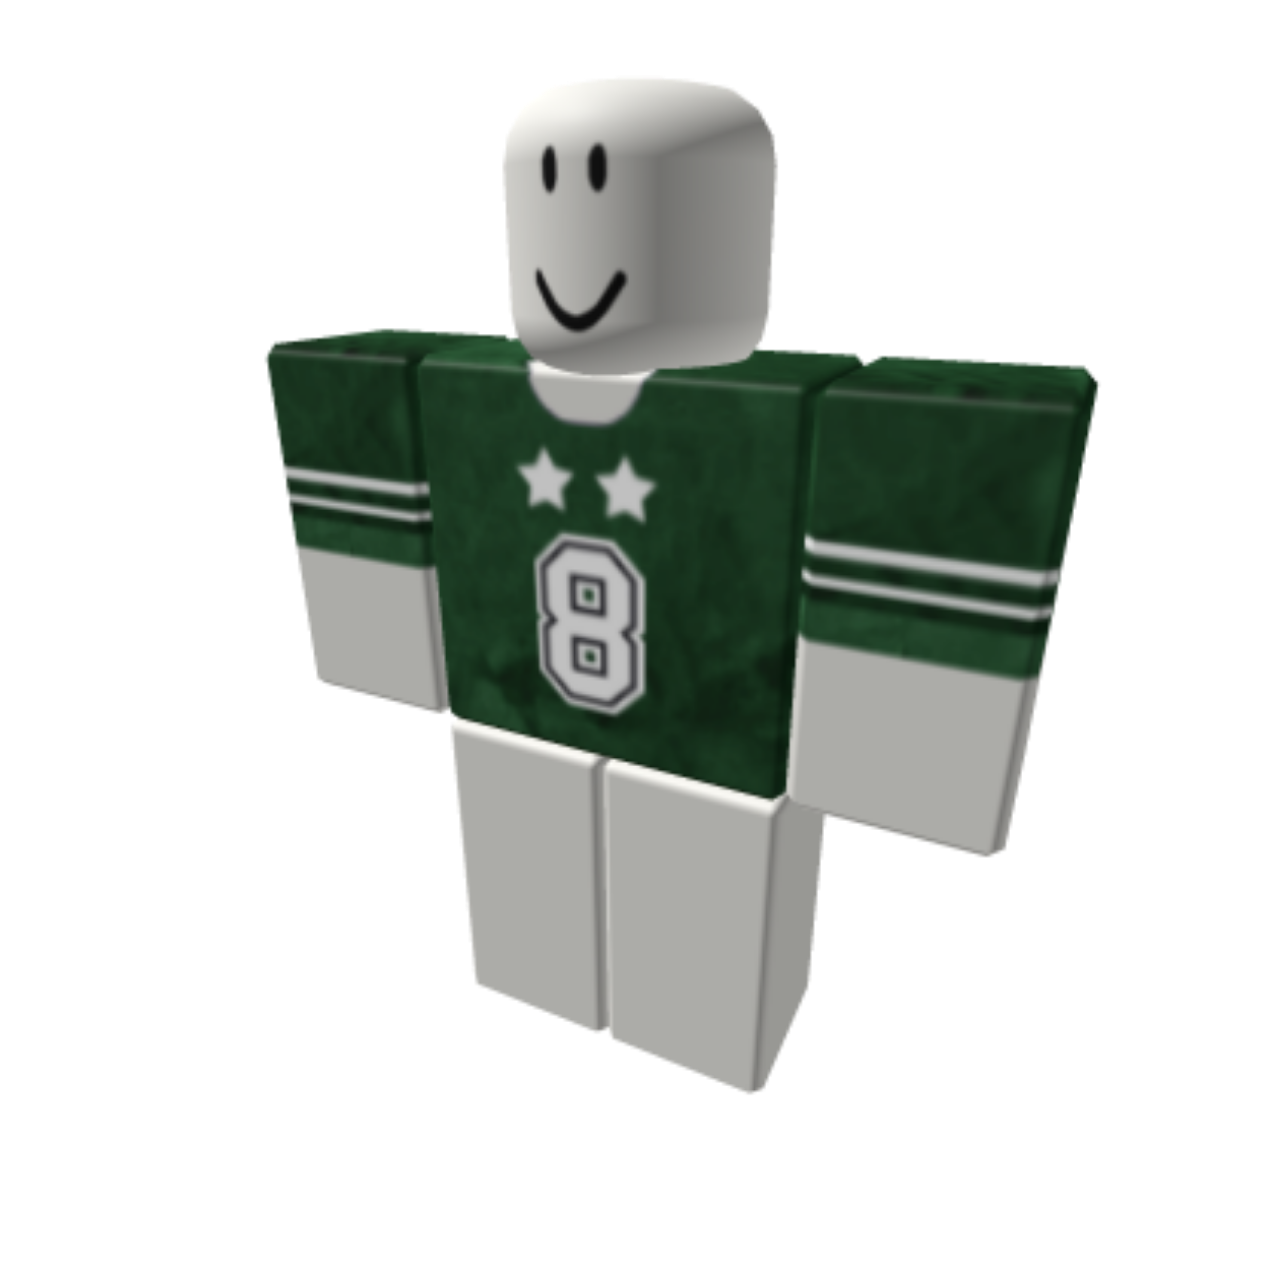 Roblox Free Clothes for Boys and Girls (2021) - Gaming Pirate